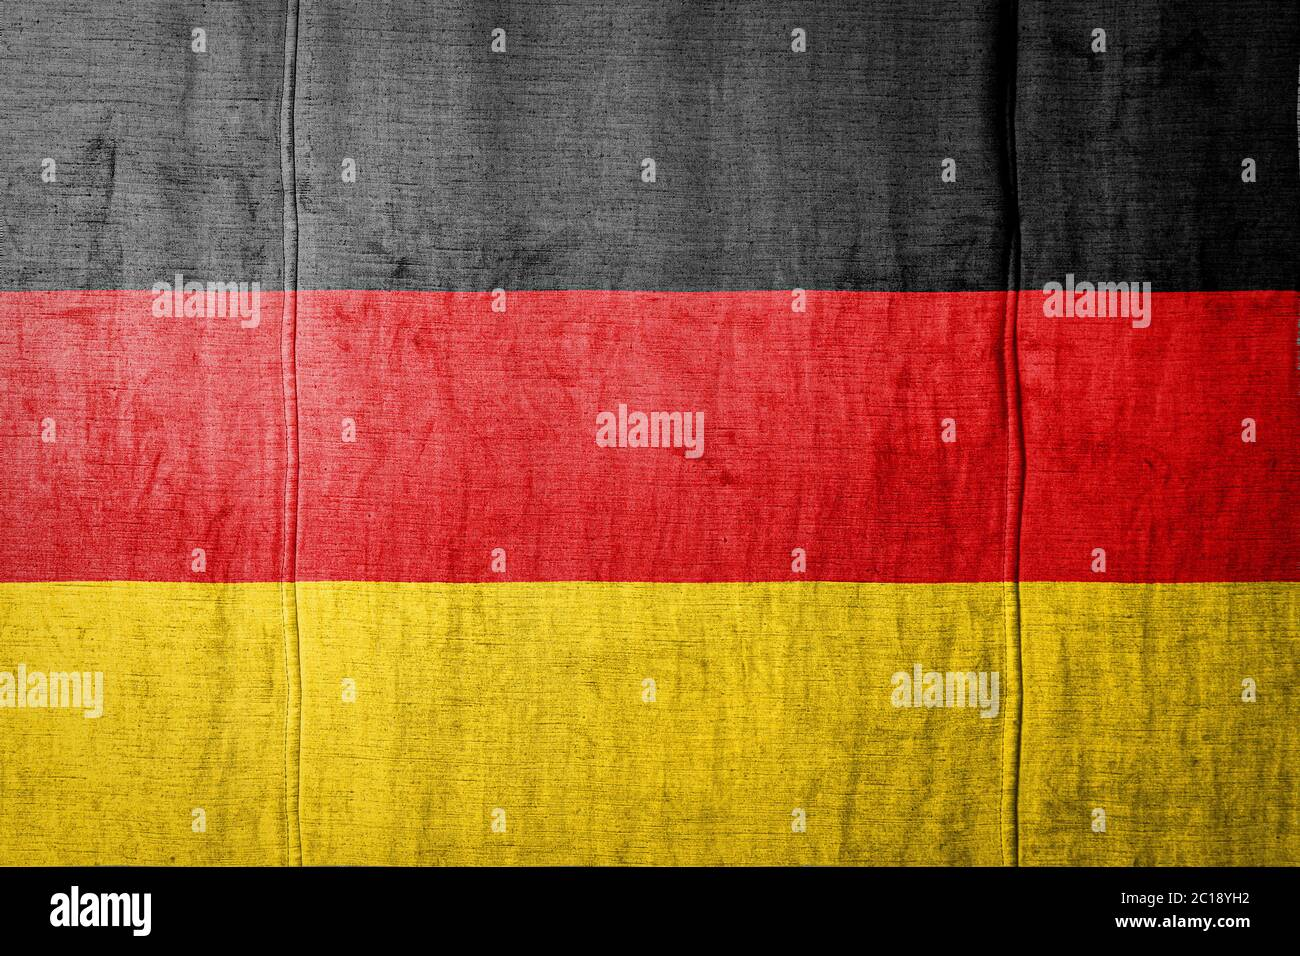 National Flag Of Germany Depicting In Paint Colors On Old Textile Flag Banner On Fabric Texture Background Stock Photo Alamy